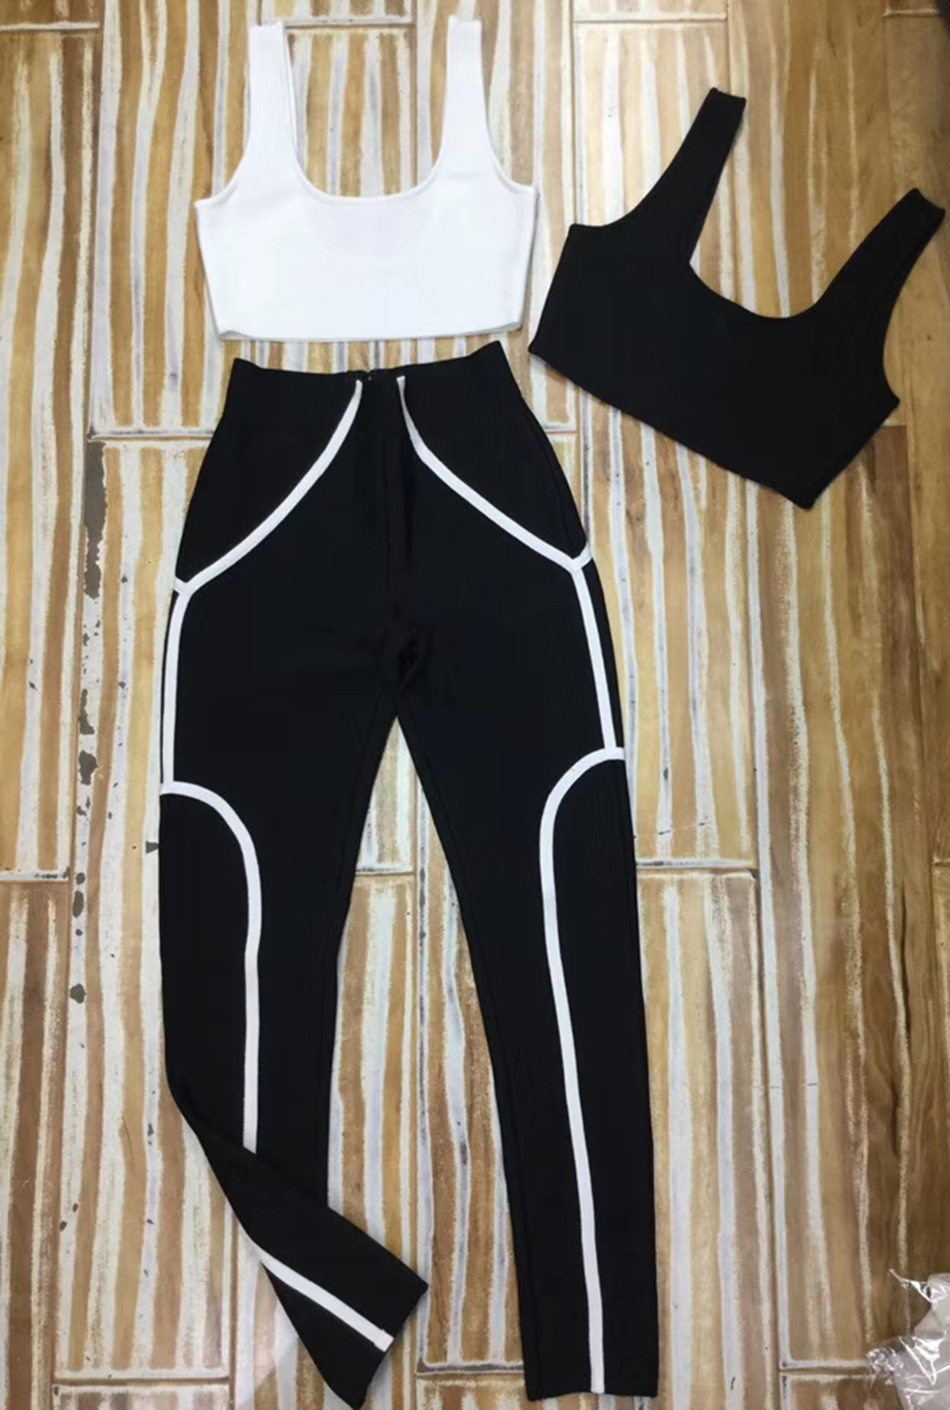 Spring 2020 New Women's Casual Set 2 Two-Piece Sexy Black White Top Short Tank Bodycon Rayon Bandage Trousers Set